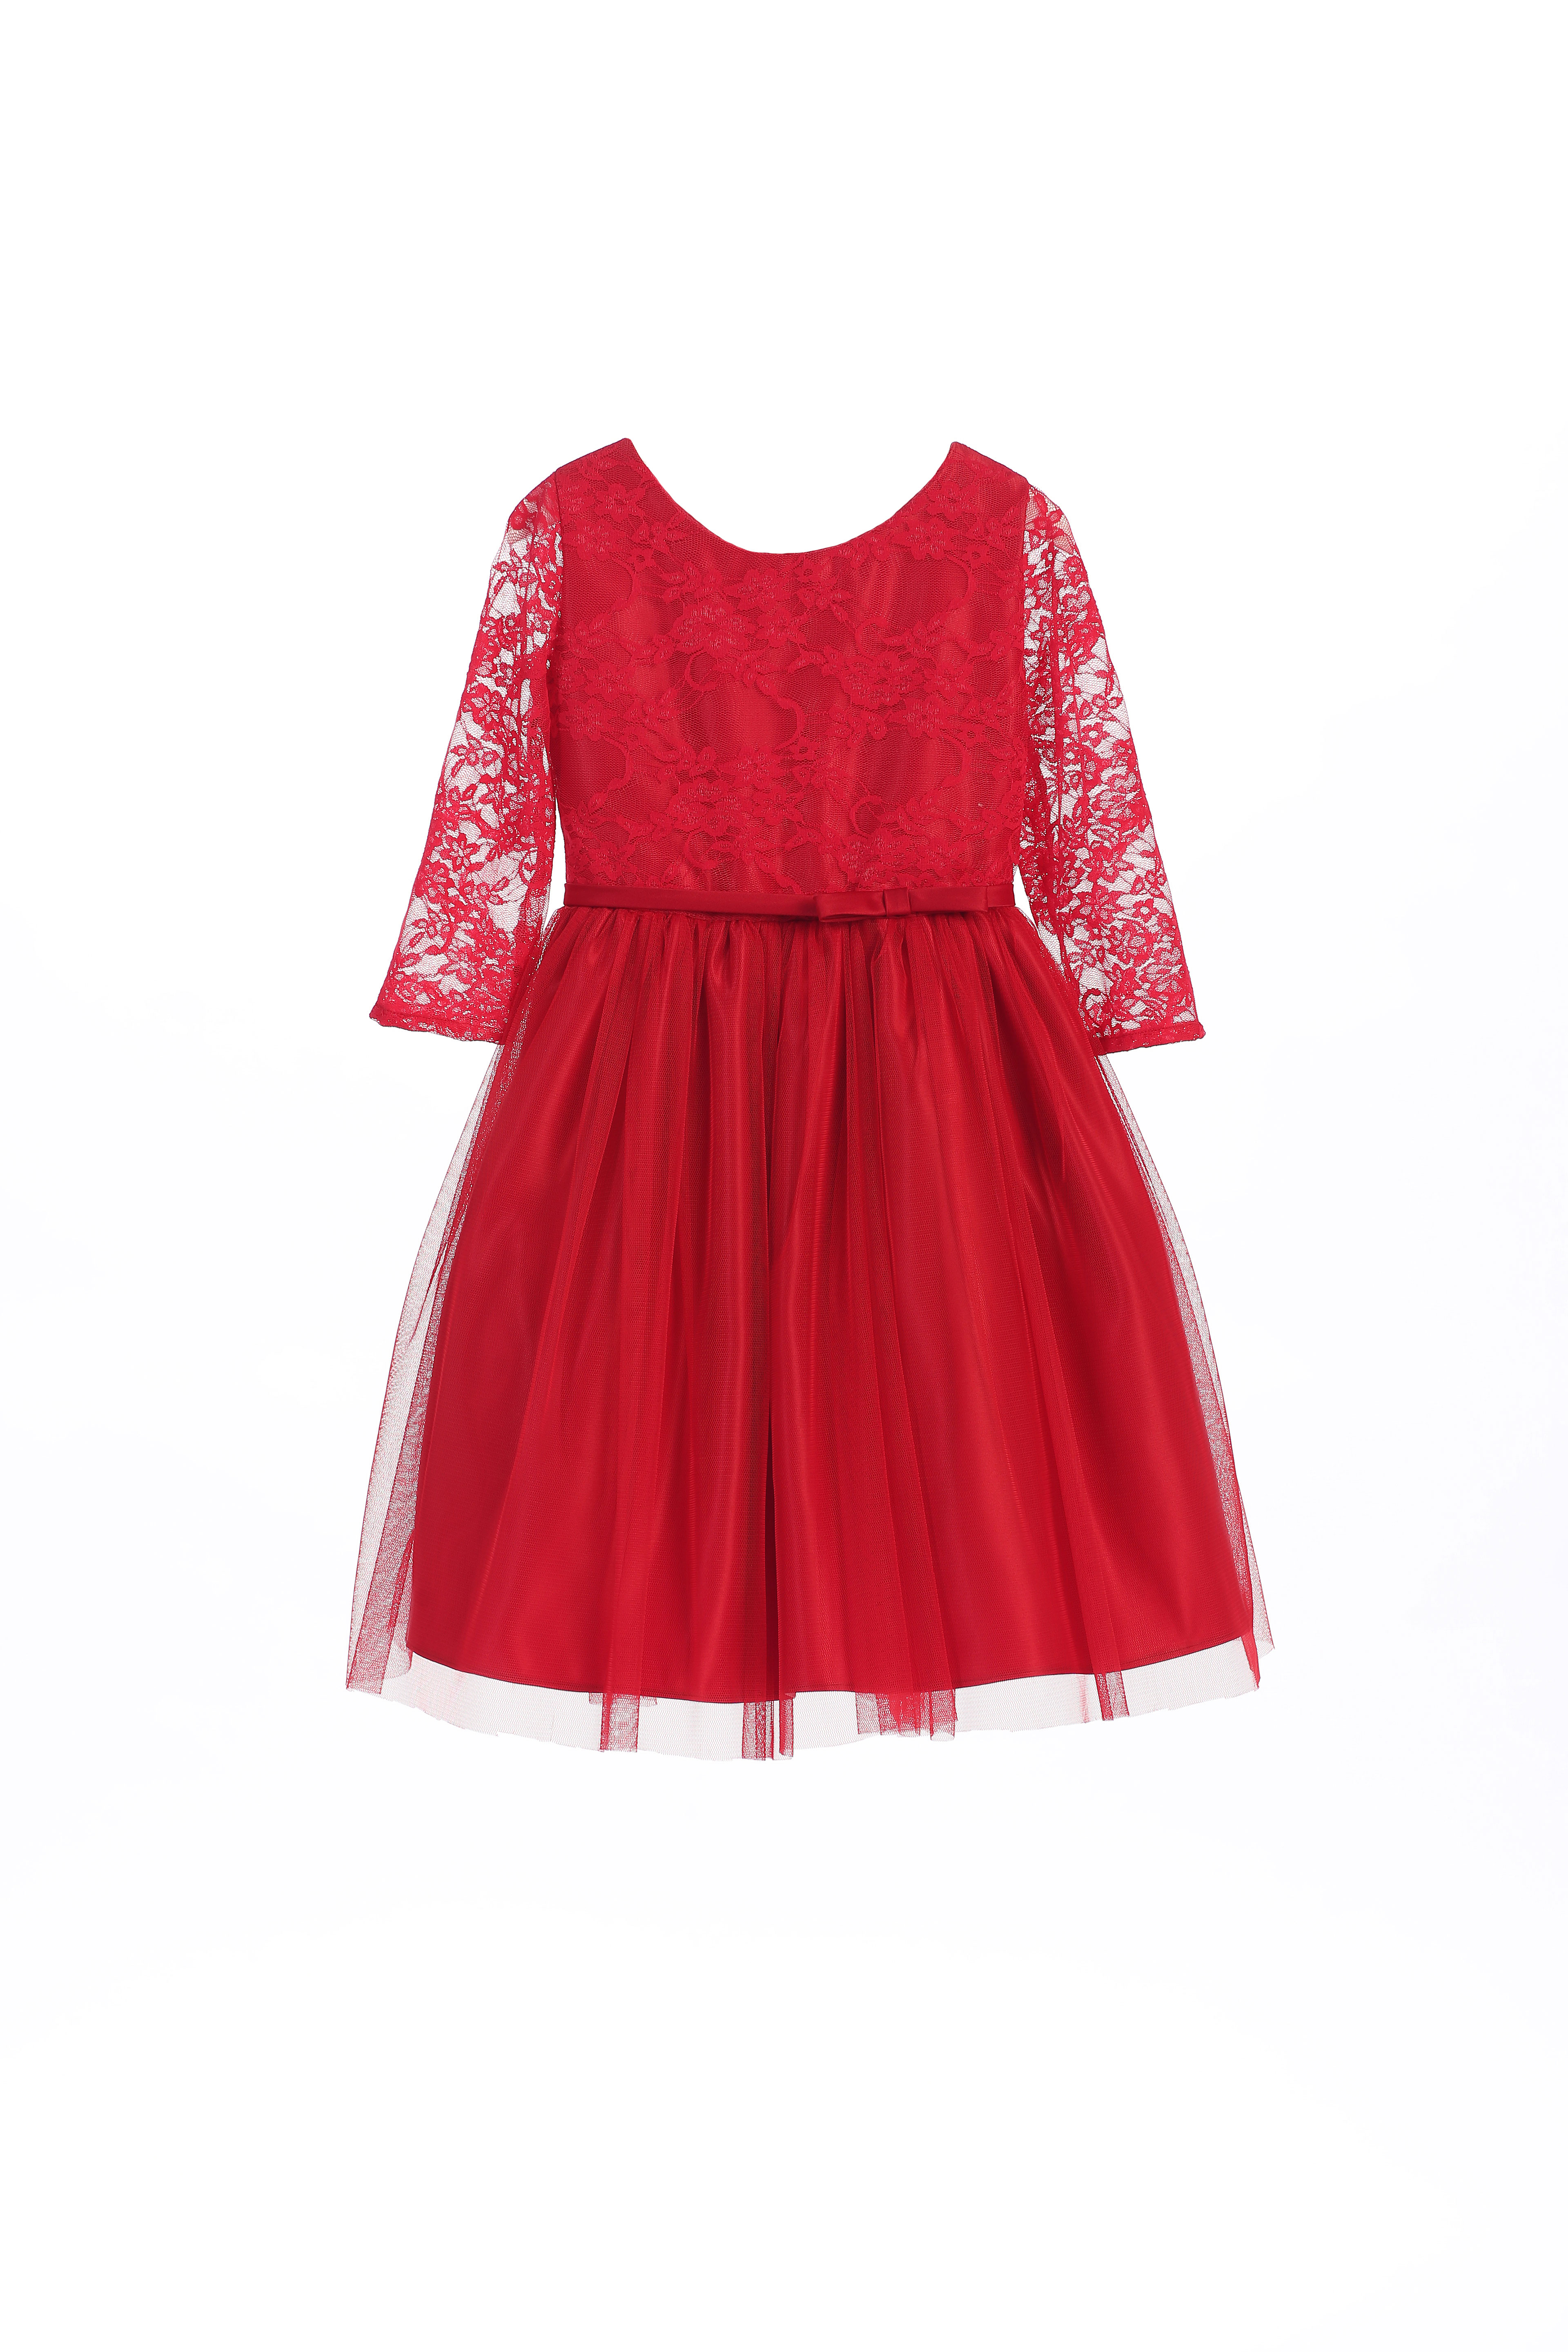 SK 599R Girls Dress Style 599 Tulle Dress with Lace Bodice in Choice of Co